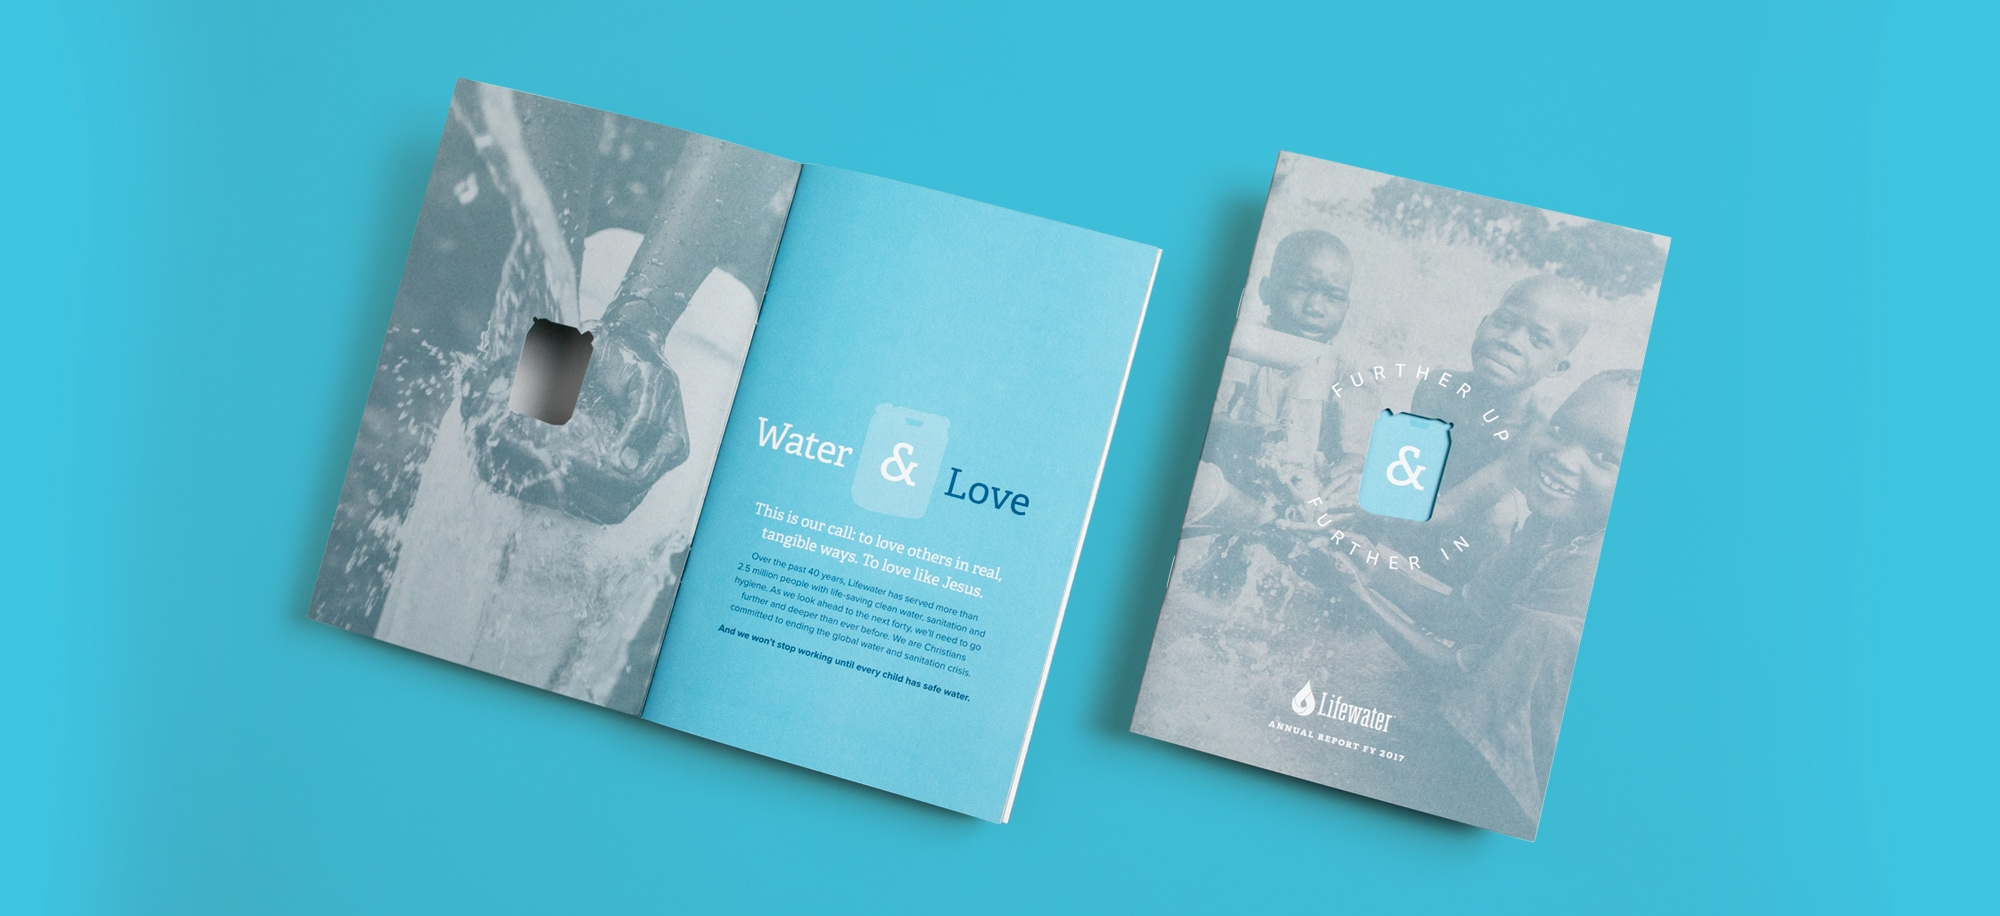 Lifewater Annual Report